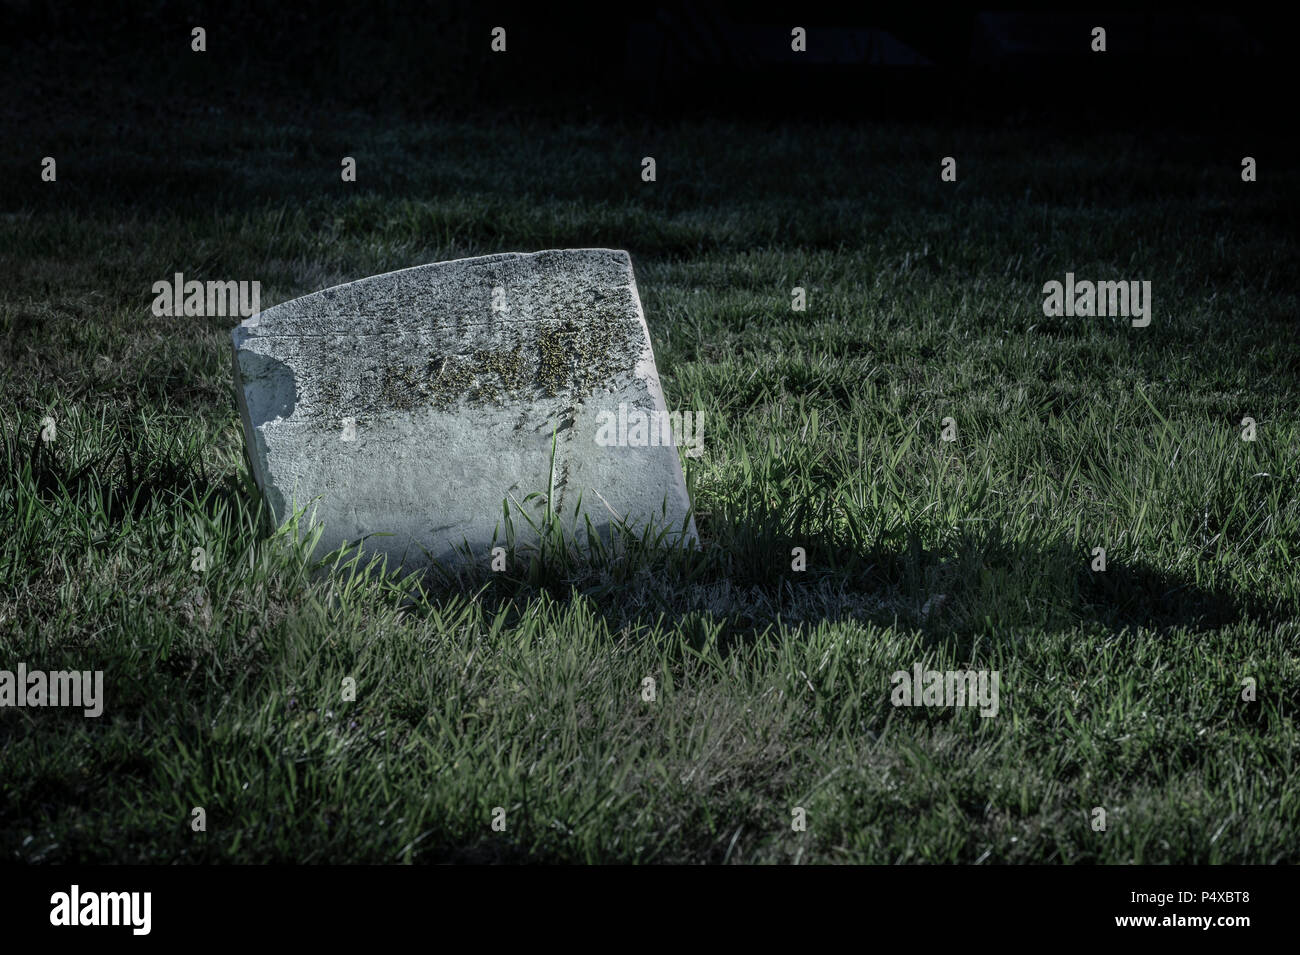 Blank Tombstone In Cemetery At Night - Stock Image